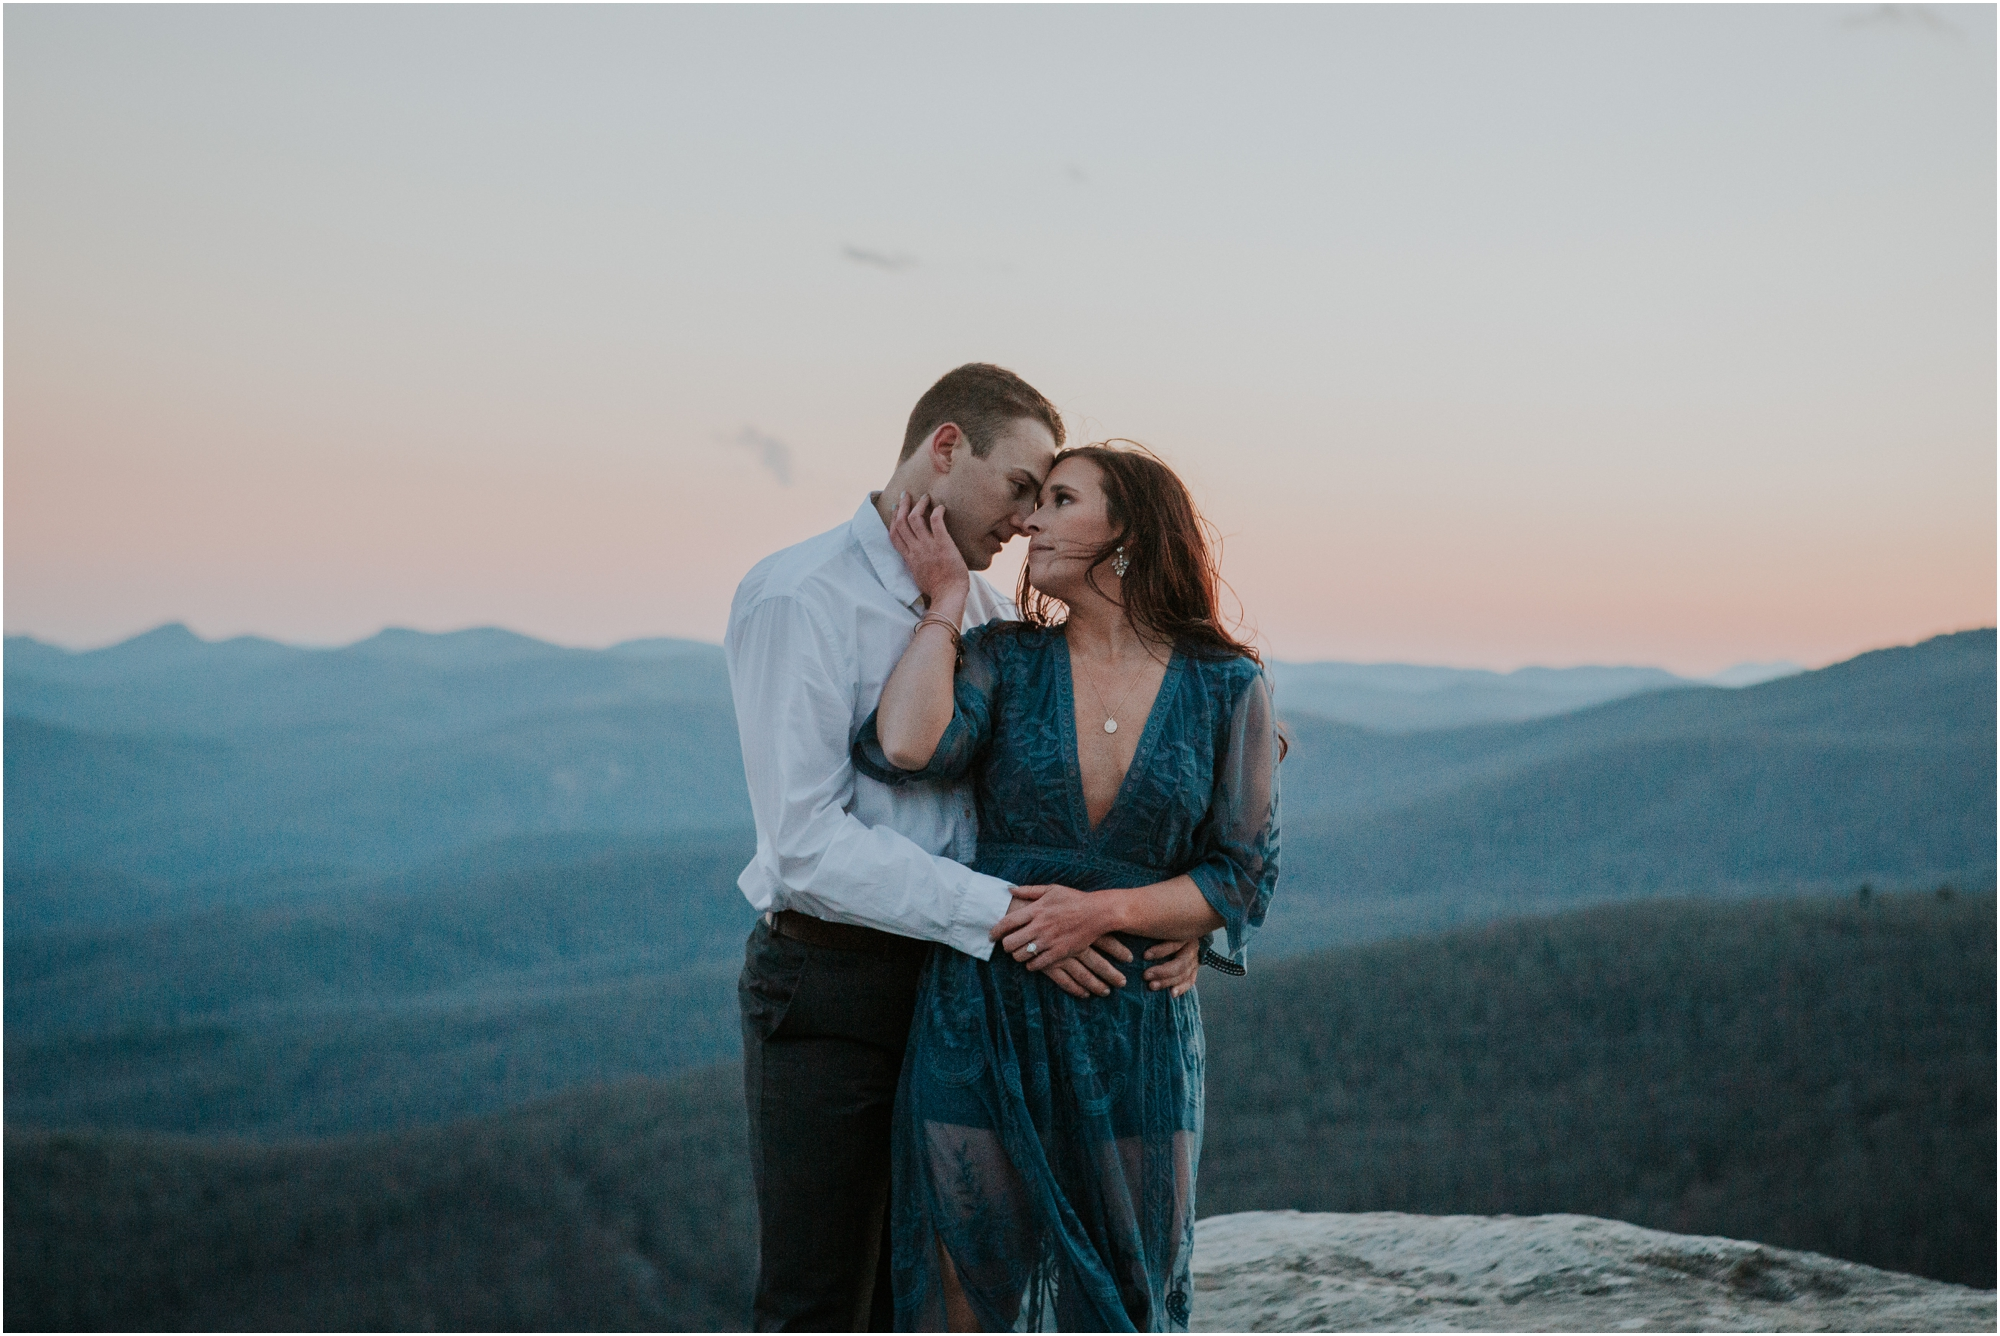 blue-ridge-parkway-engagement-session-north-carolina-boone-blowing-rock-northeast-tennessee-katy-sergent-photography_0035.jpg